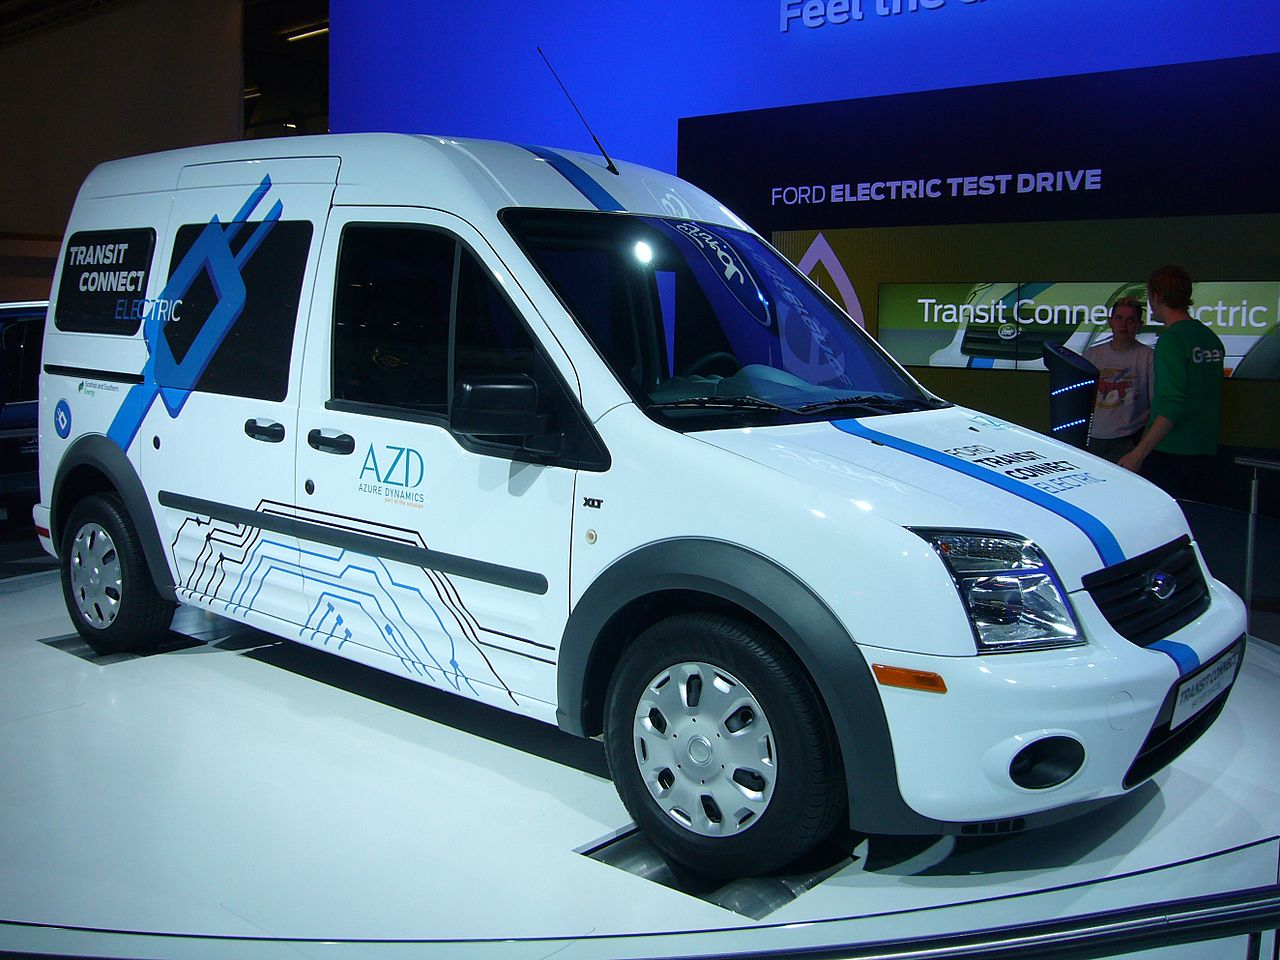 2018 Ford Transit Connect Electric photo - 4